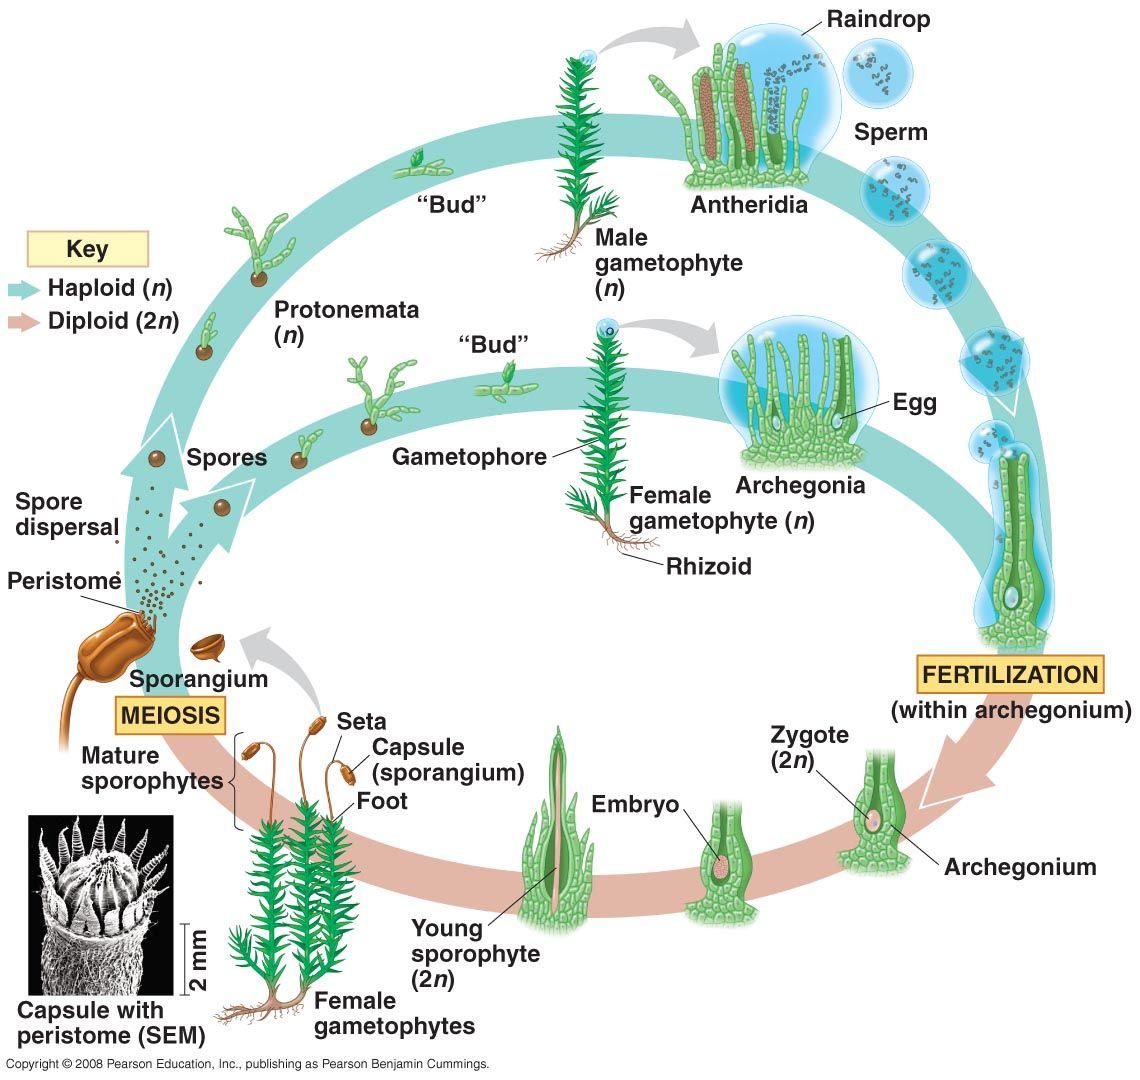 life cycles of bryophytes seedless vascular In term of reproduction within the life cycle to main difference is that seed plants spread seed in order to reproduce whereas seedless vascular plants spread spores in order to continue the life cycle.